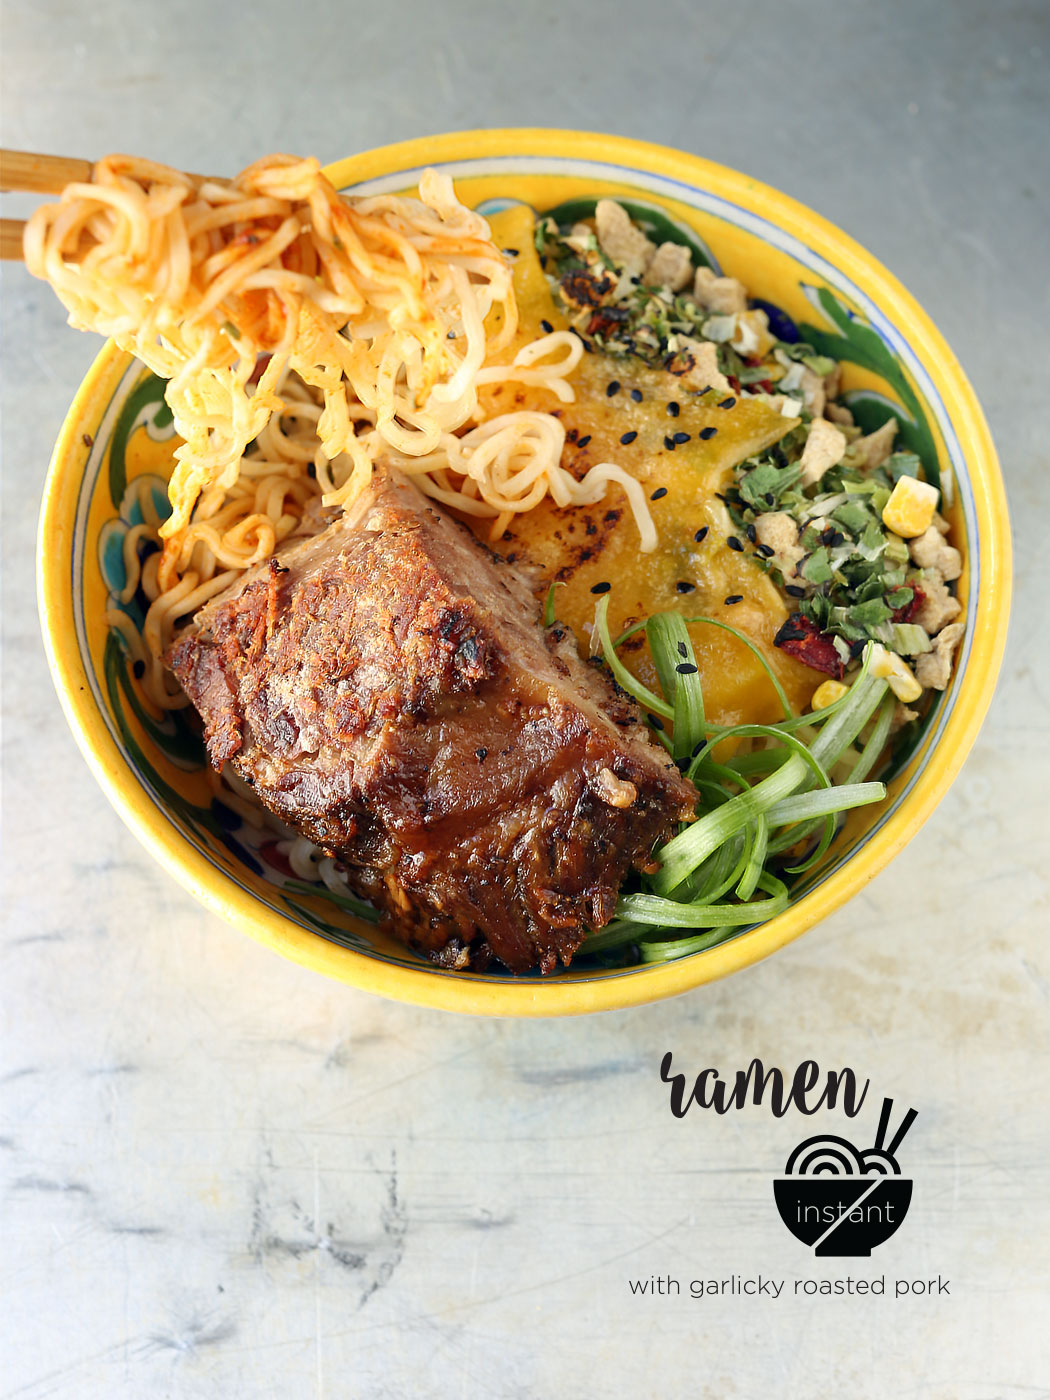 Not So Instant Ramen With Roasted Pork